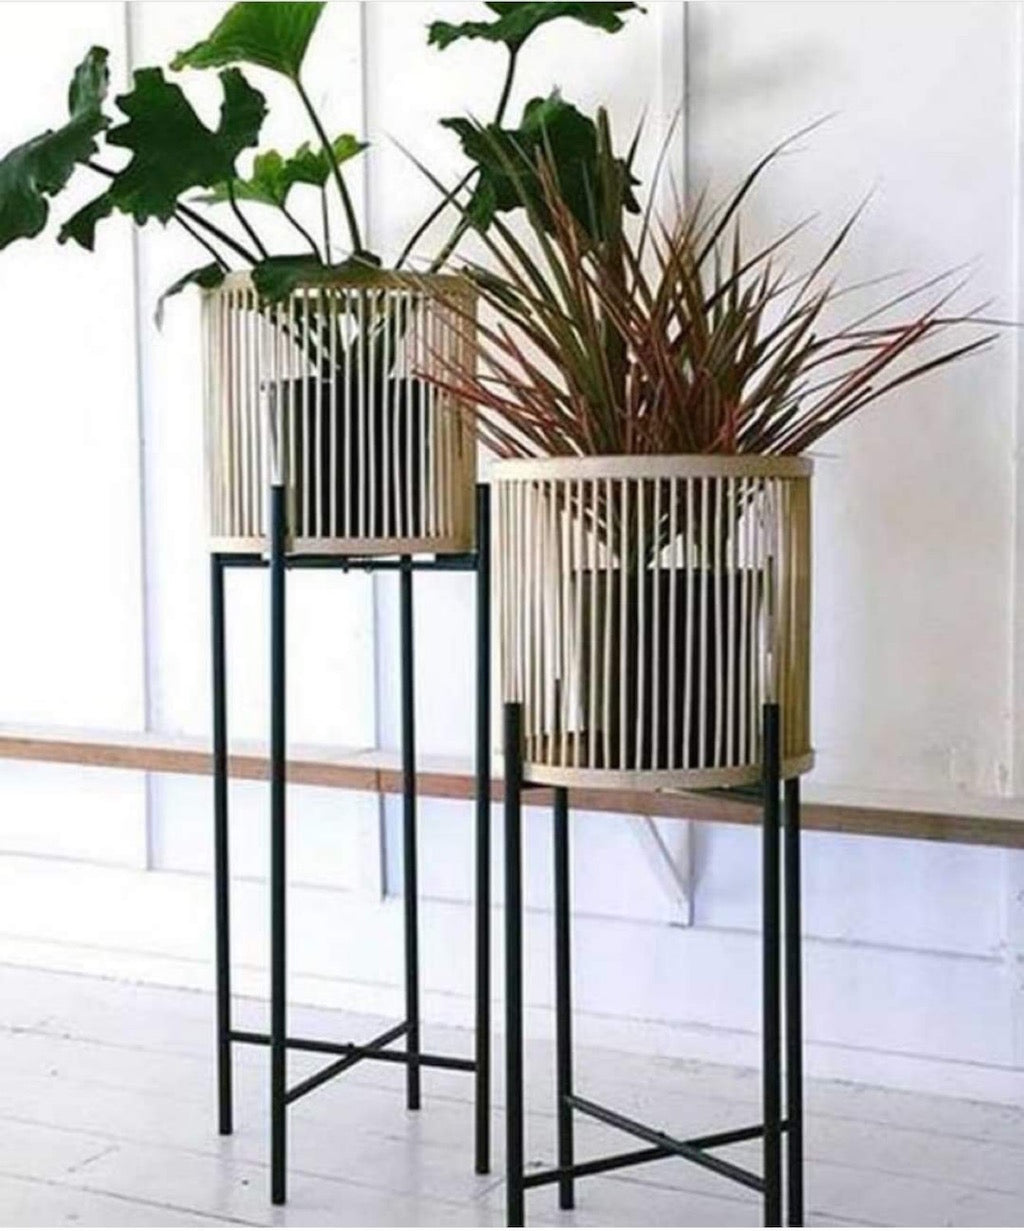 Rhythm Plant Stands - metal base - stunning natural bamboo basket - Large: 35x100cm - Small: 35x80cm - Basket size: 31x31cm | Salt&Pepper |Bliss Gifts & Homewares - Unit 8, 259 Princes Hwy Ulladulla - Shop Online & In store - 0427795959, 44541523 - Australia wide shipping